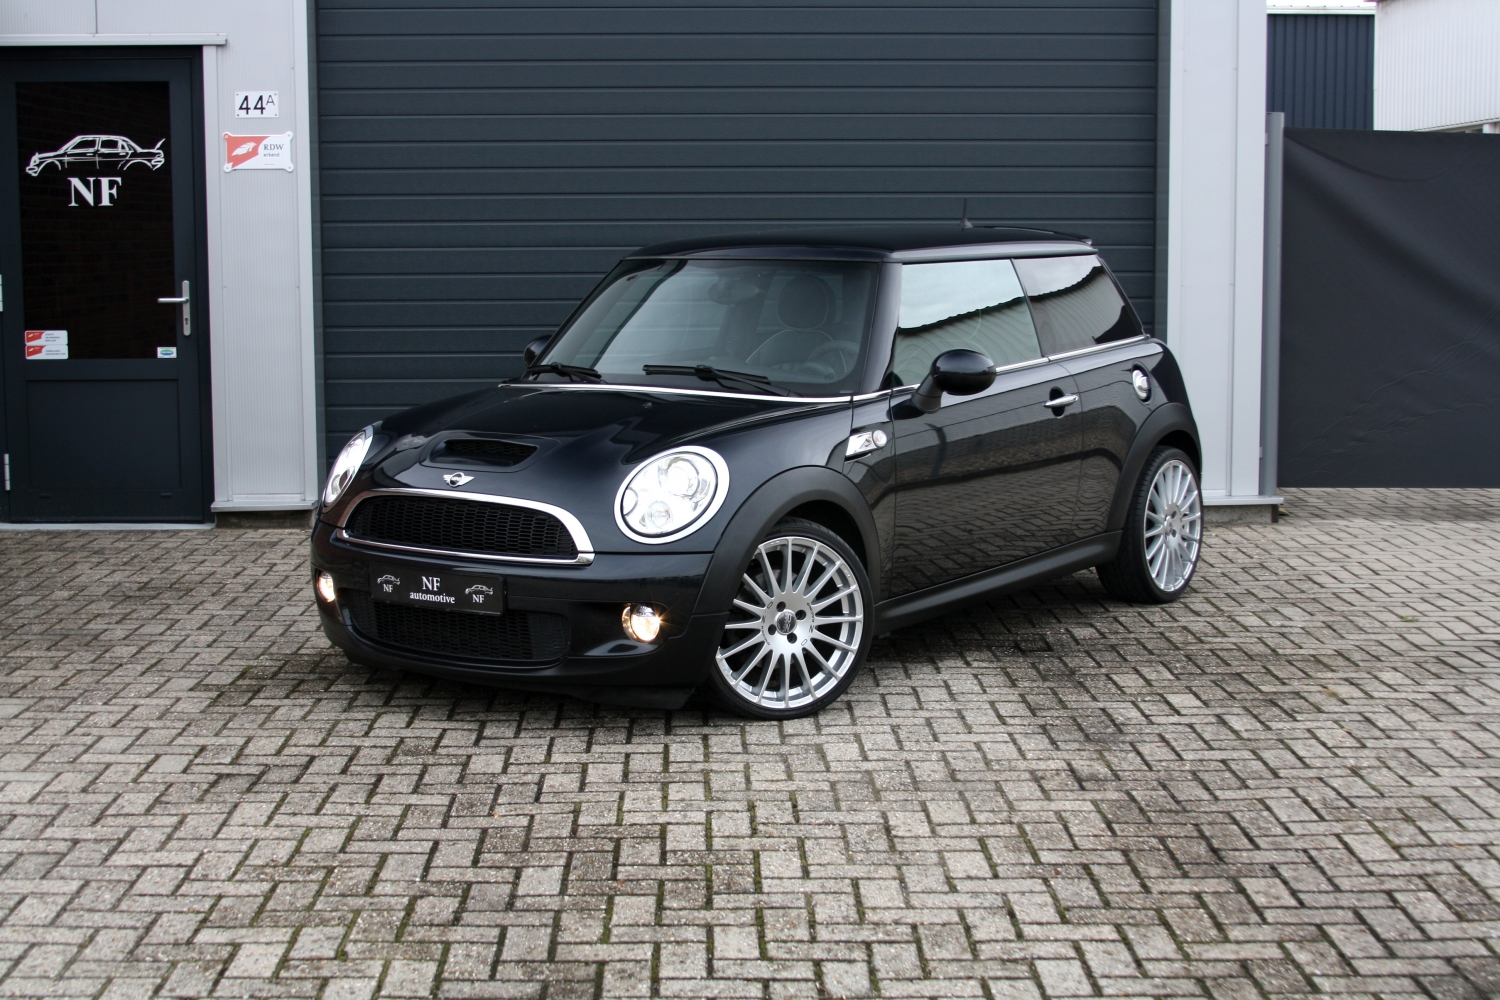 mini cooper s r56 chili kopen bij nf automotive. Black Bedroom Furniture Sets. Home Design Ideas